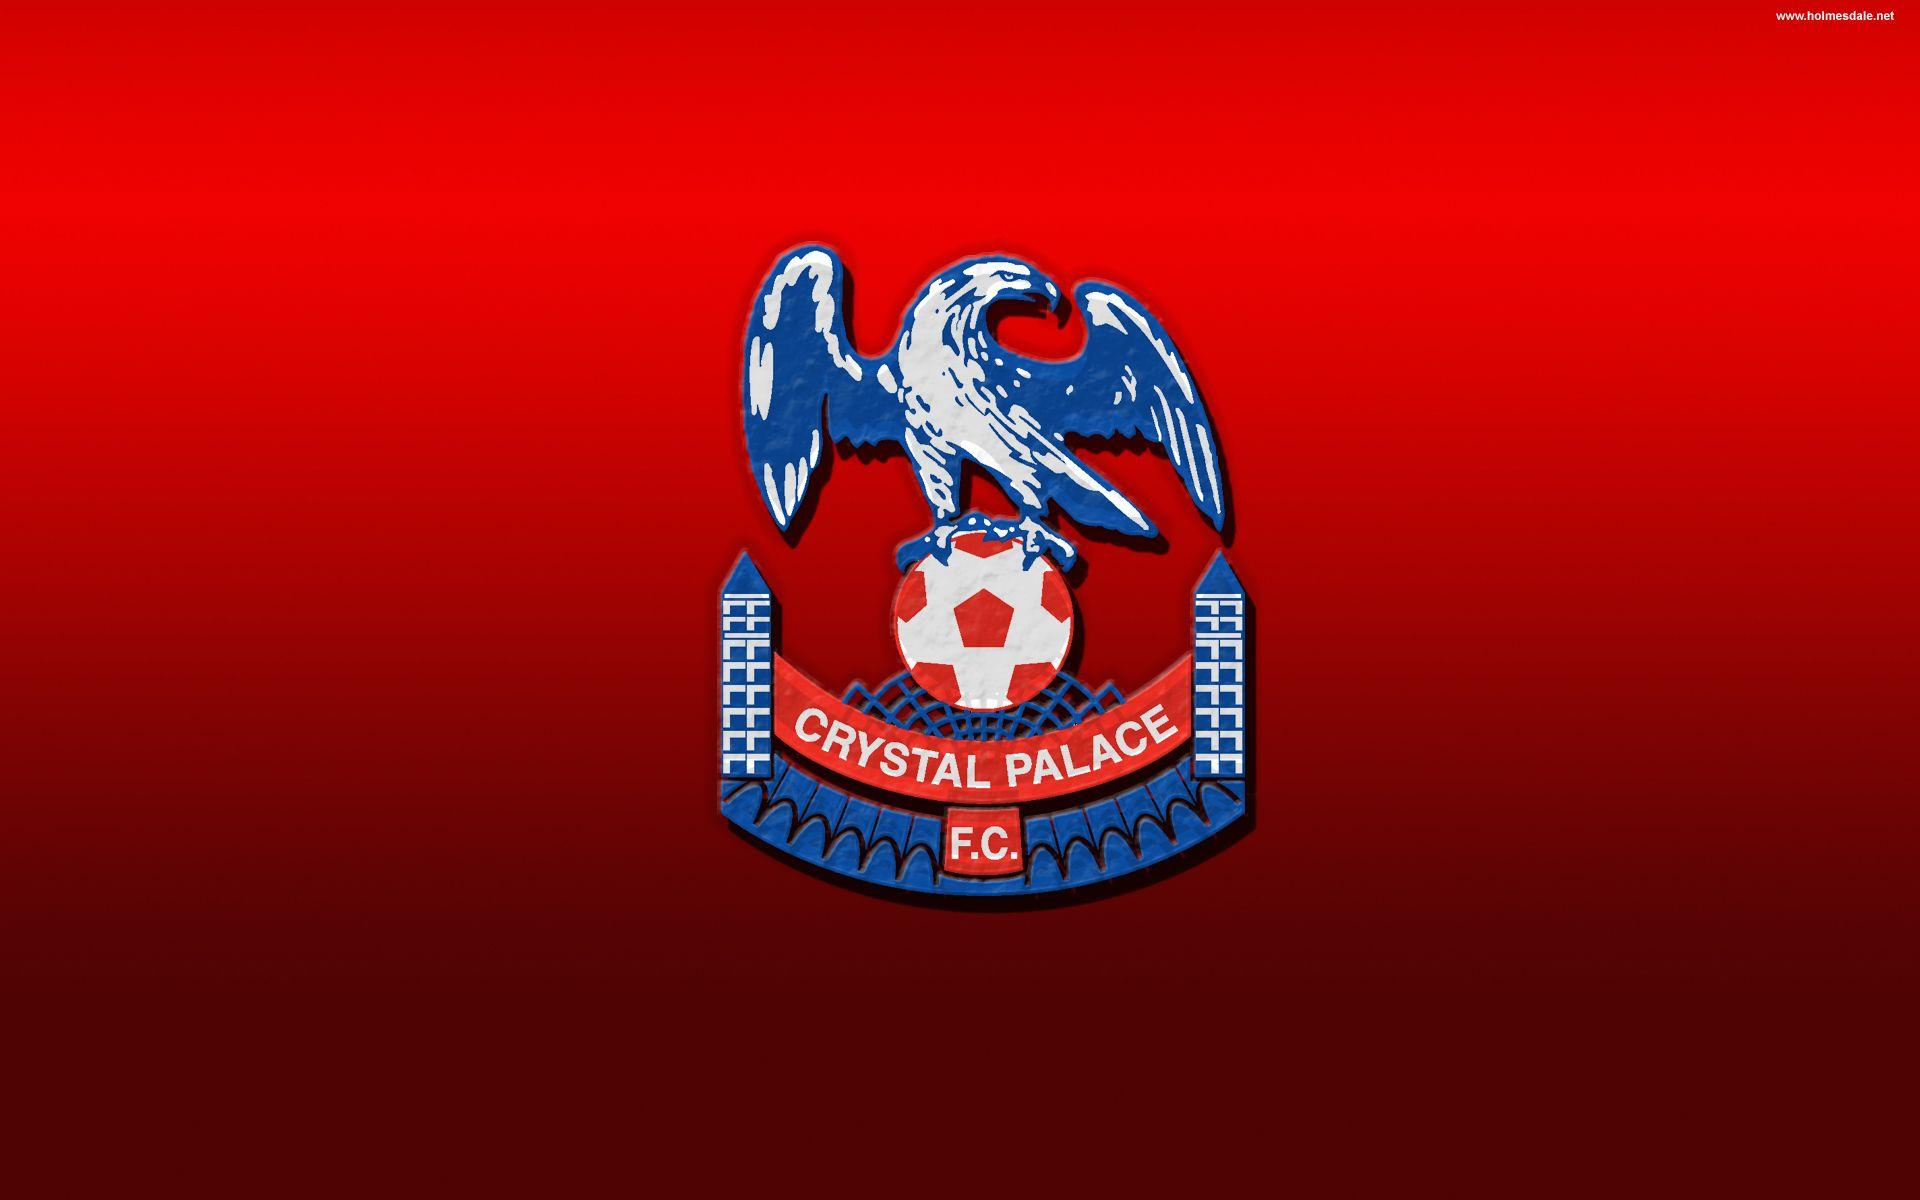 Crystal Palace Logo Football Wallpaper Images #8323 Wallpaper ...